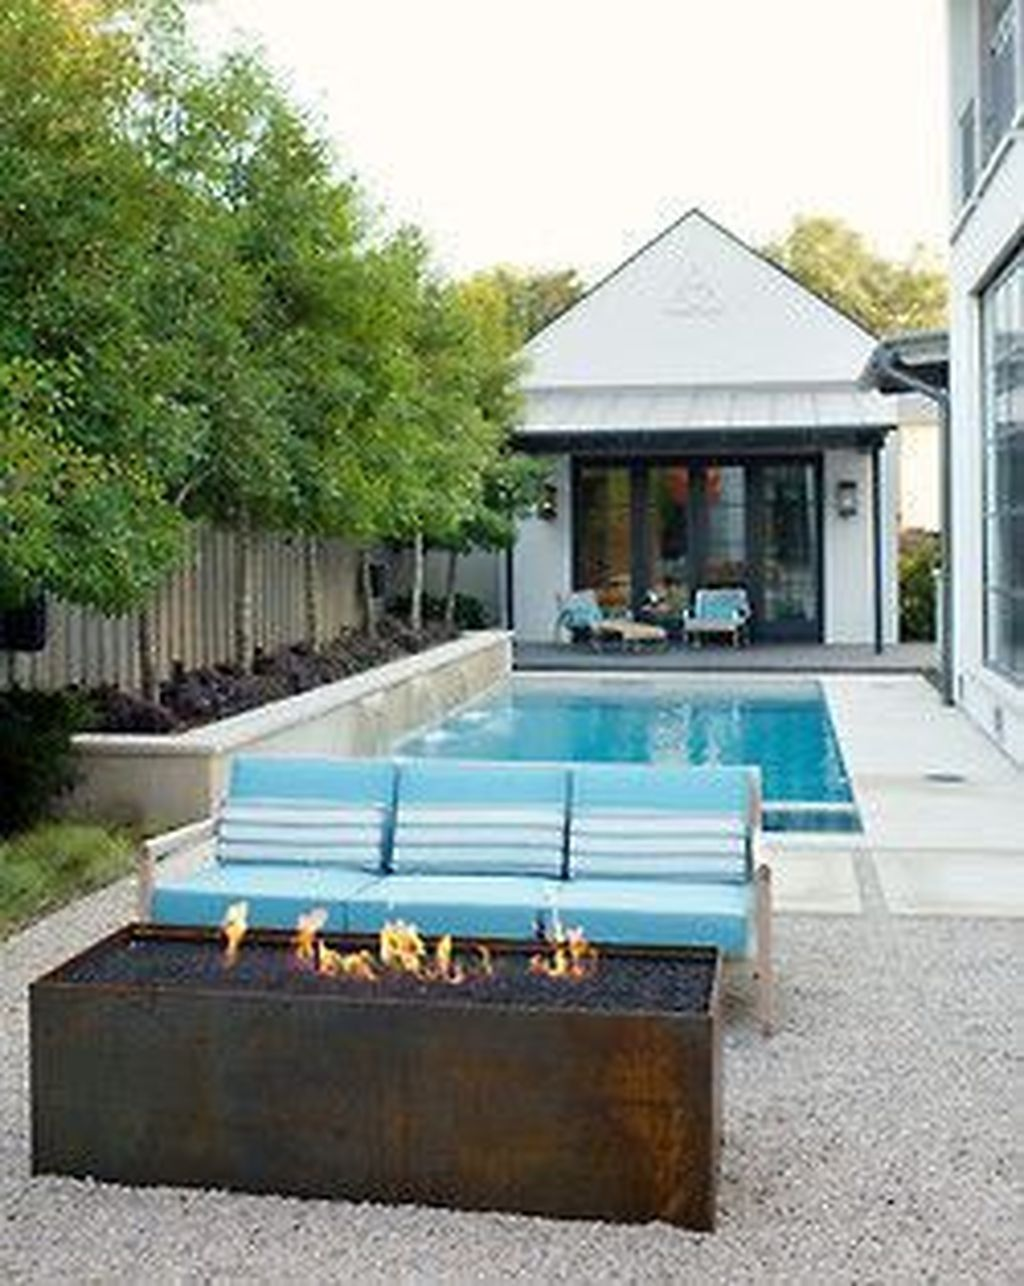 47 Comfy Outdoor Garden Ideas With Small Pool Small Pool Design Small Backyard Pools Modern Pools Backyard small pool house ideas